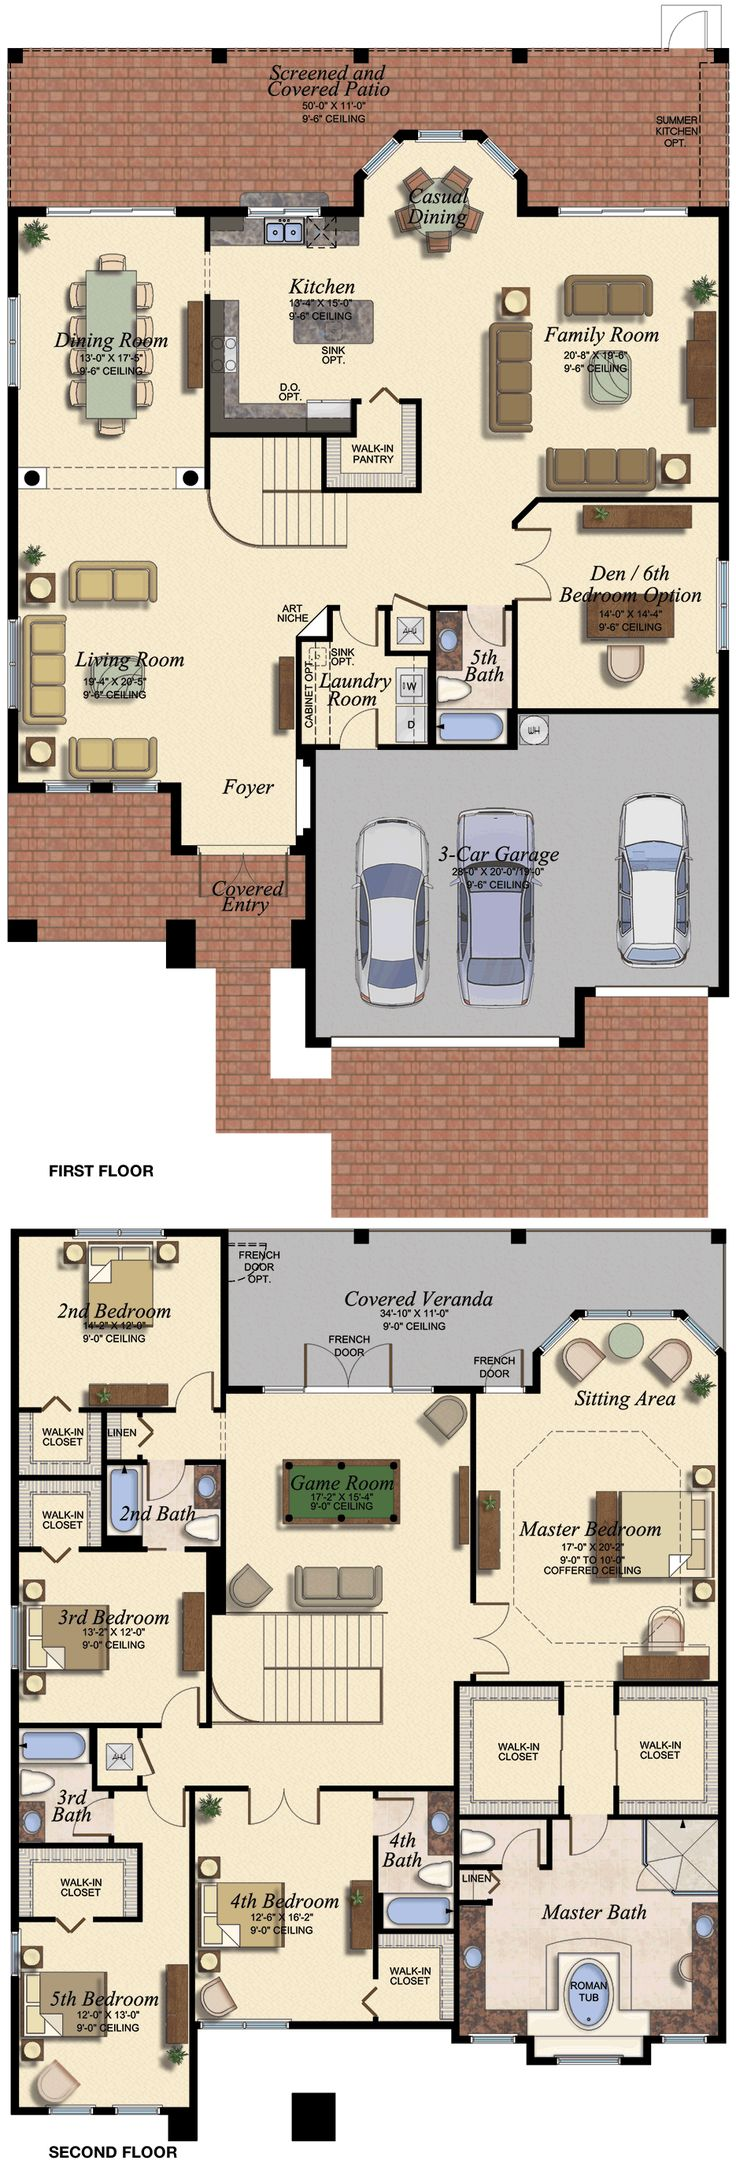 Superior VENETIAN/678 Floor Plan (Large View). Needs More Built In Storage Downstairs